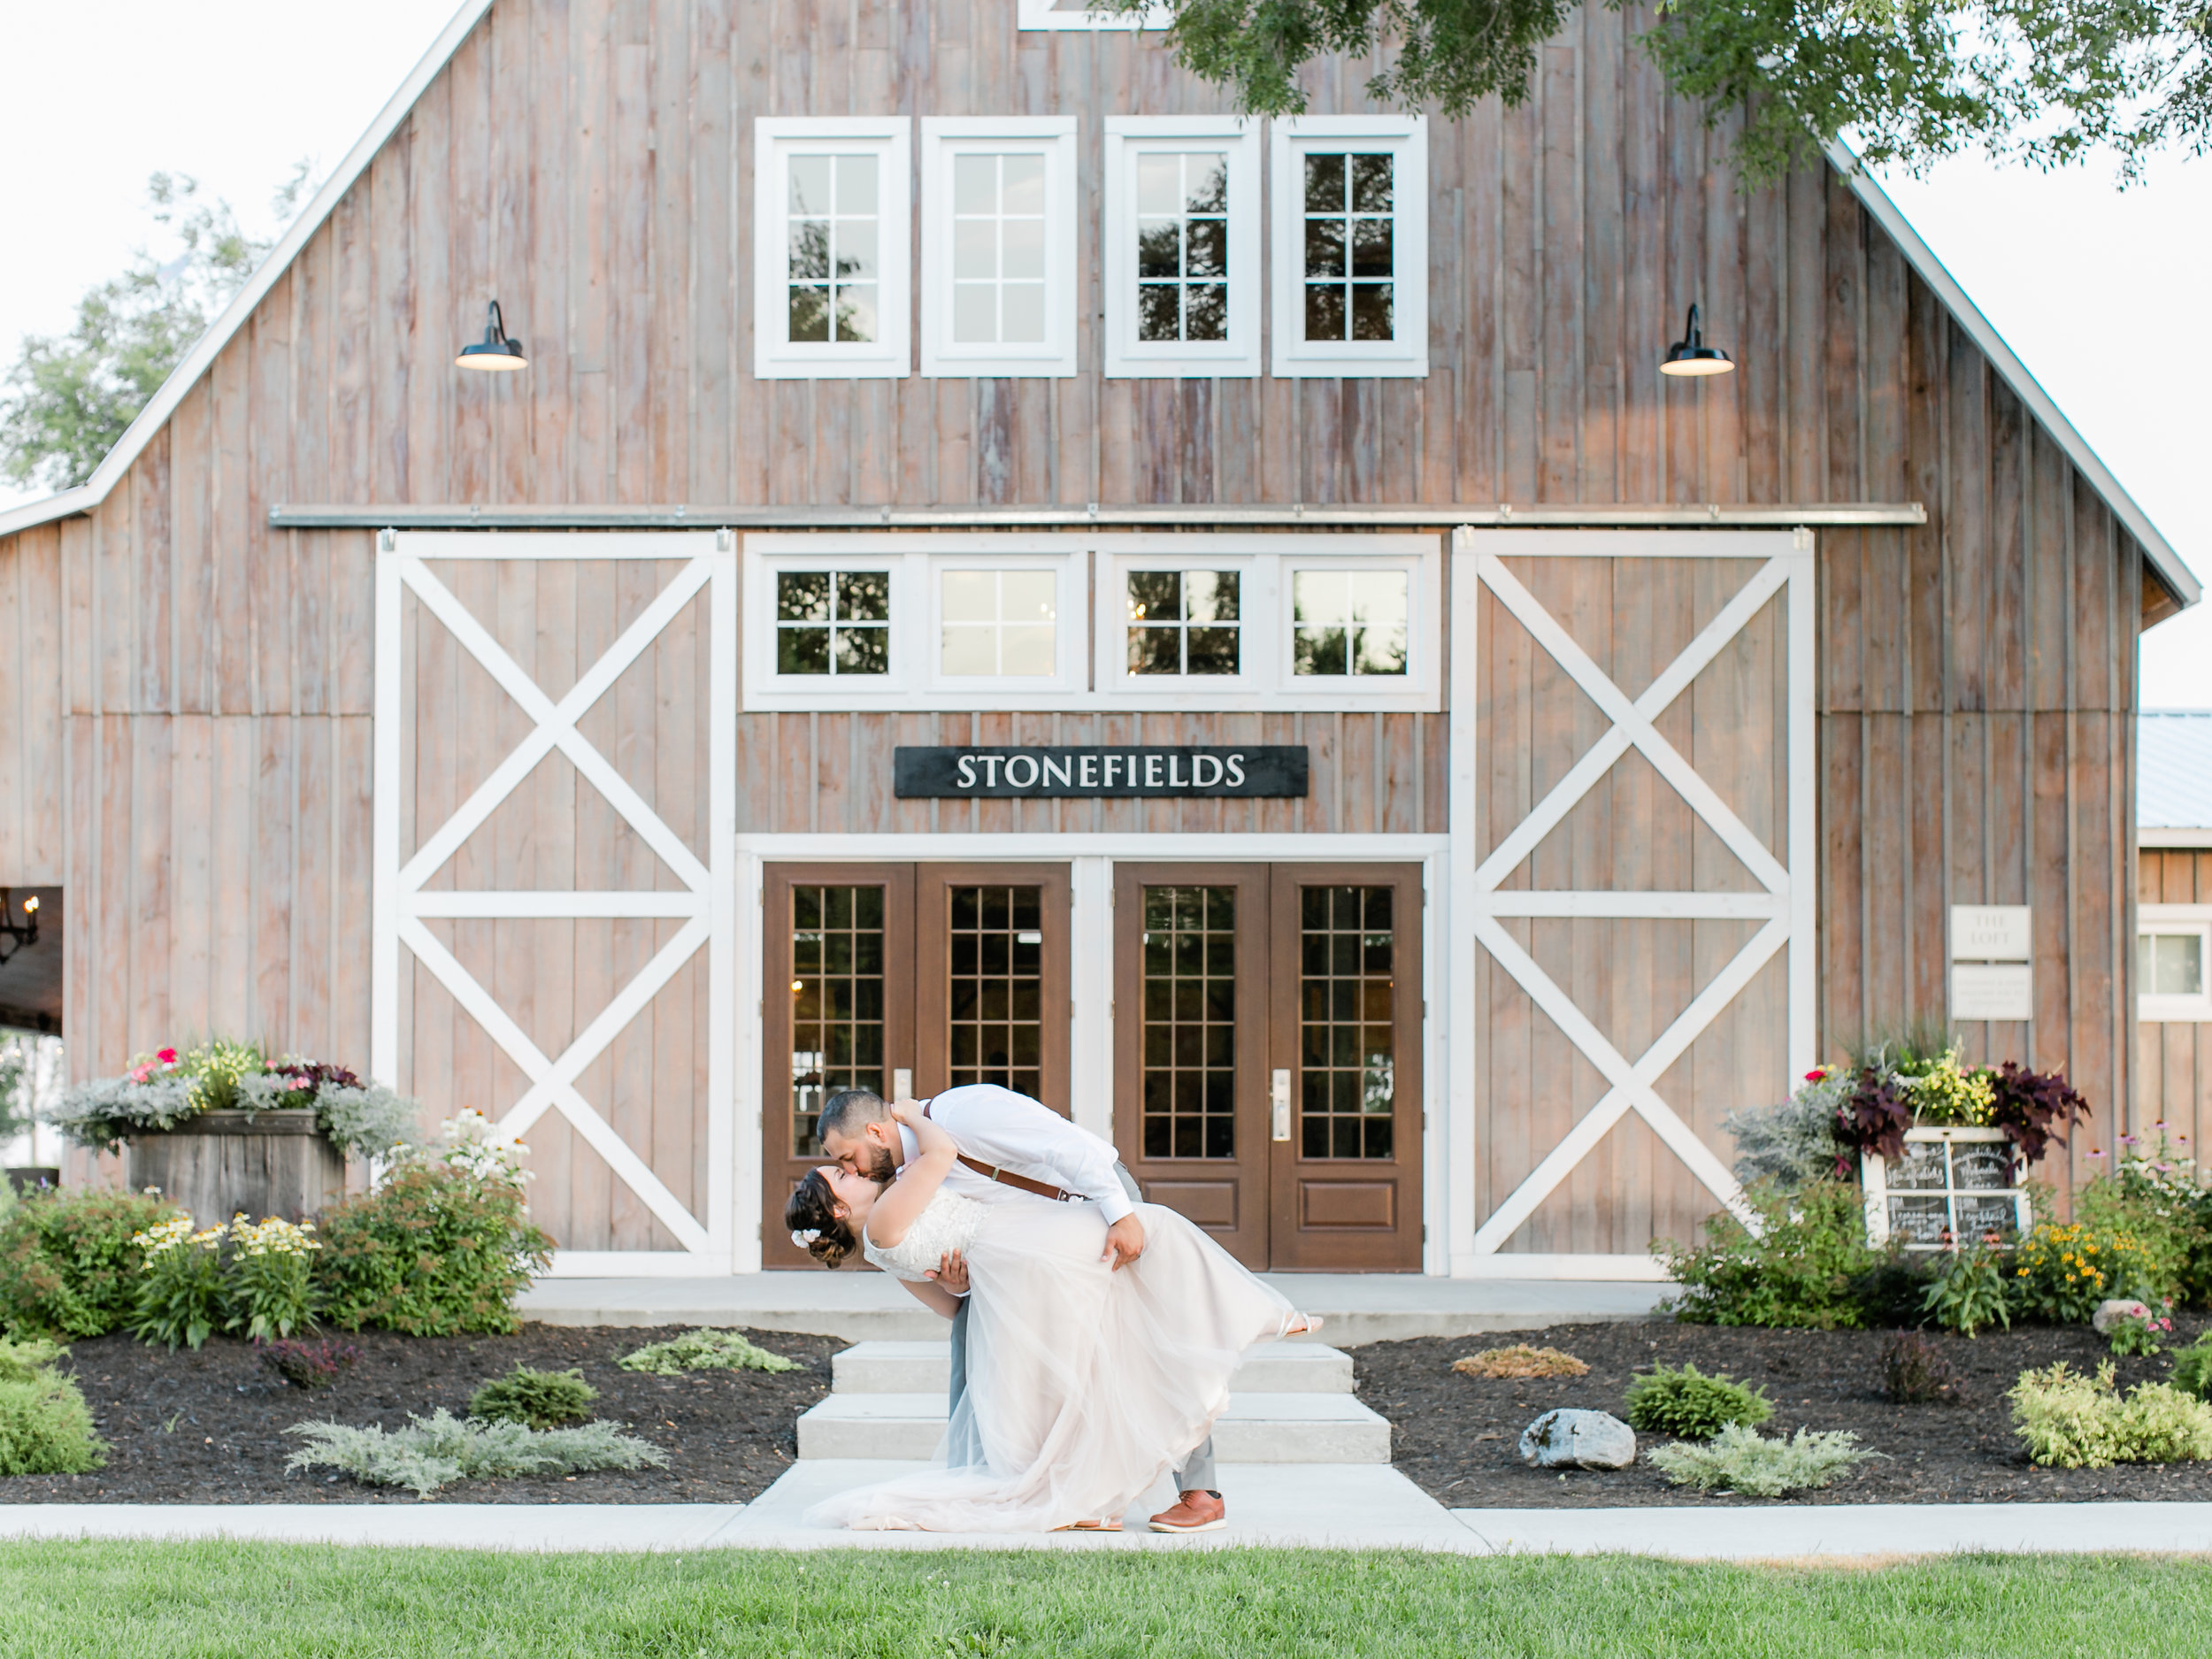 Stonefield's Estate in Carleton Place is a perfect backdrop to a newlywed first kiss